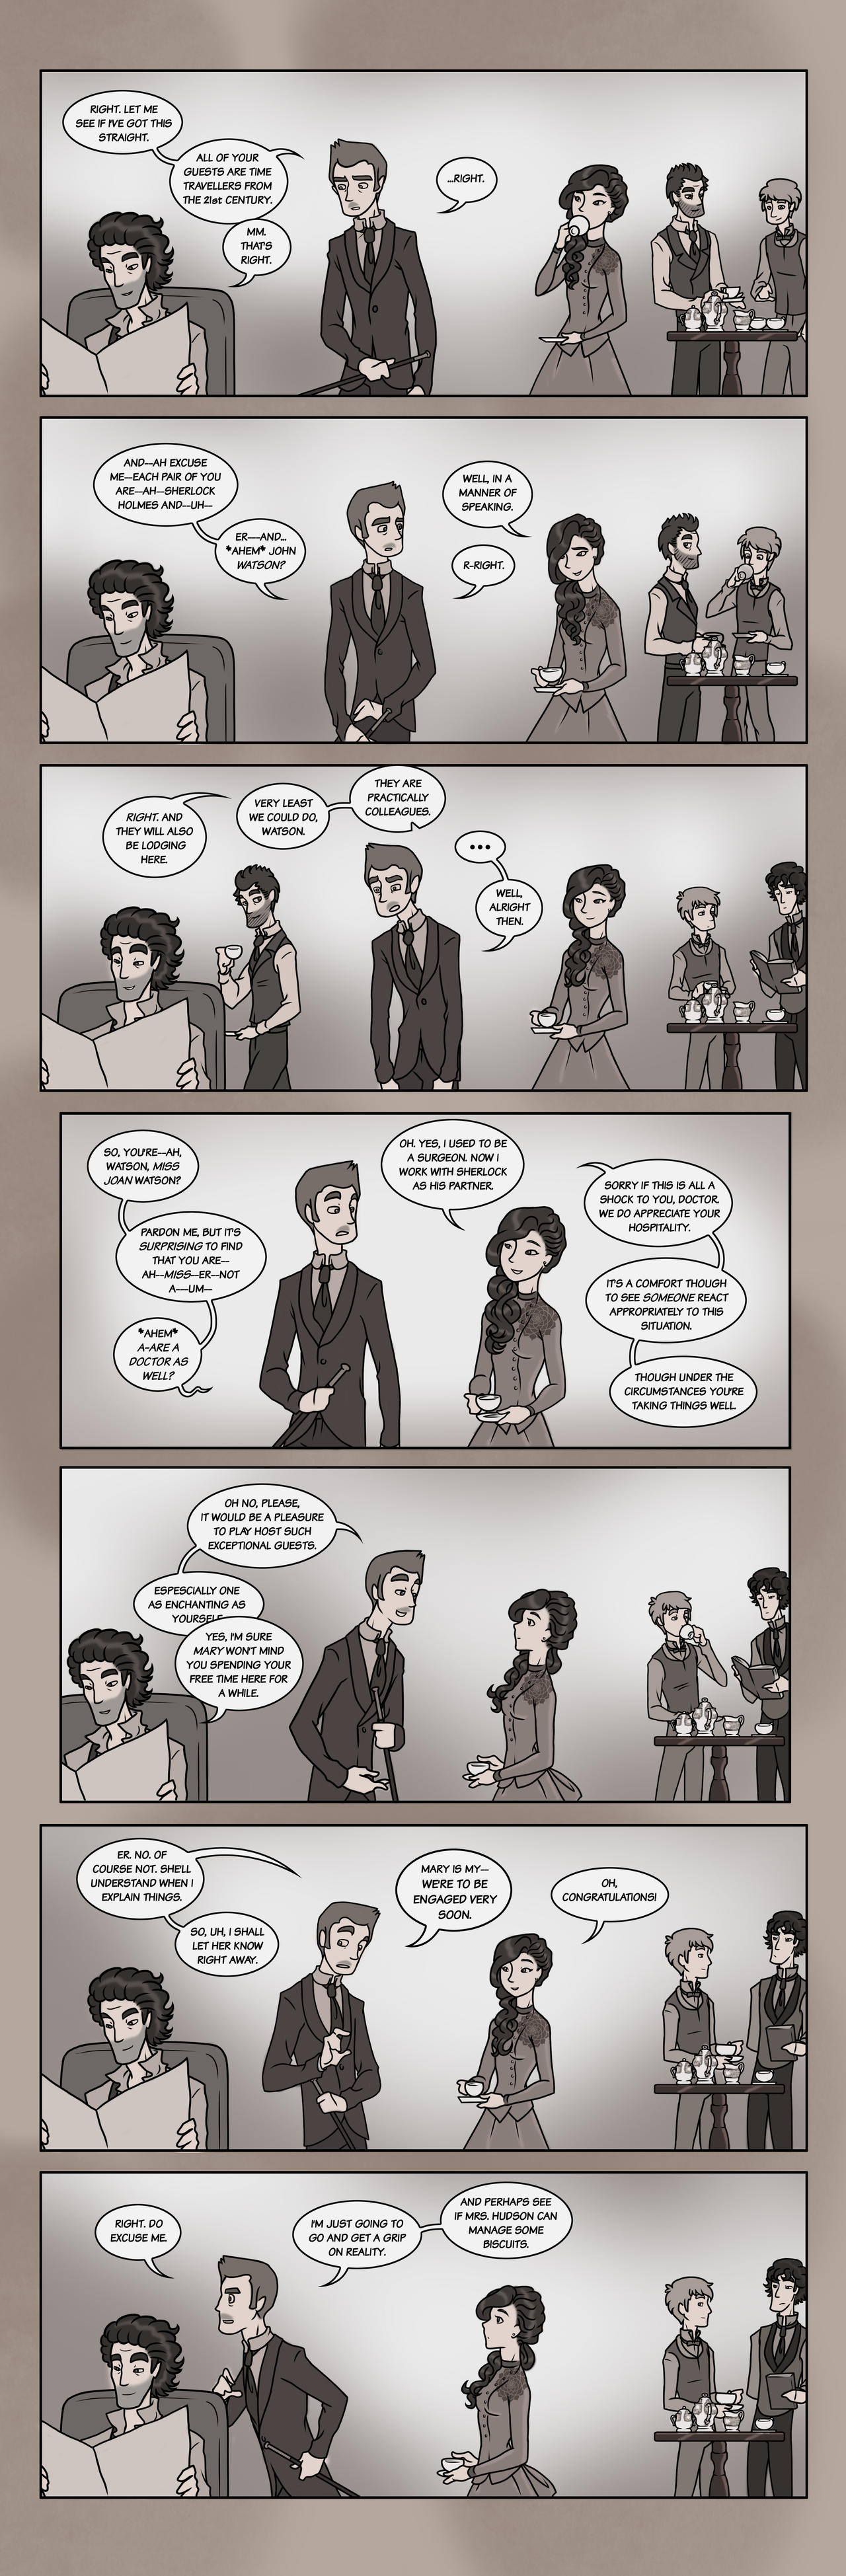 Elementary/Sherlock Special: Part Seven by maryfgr23